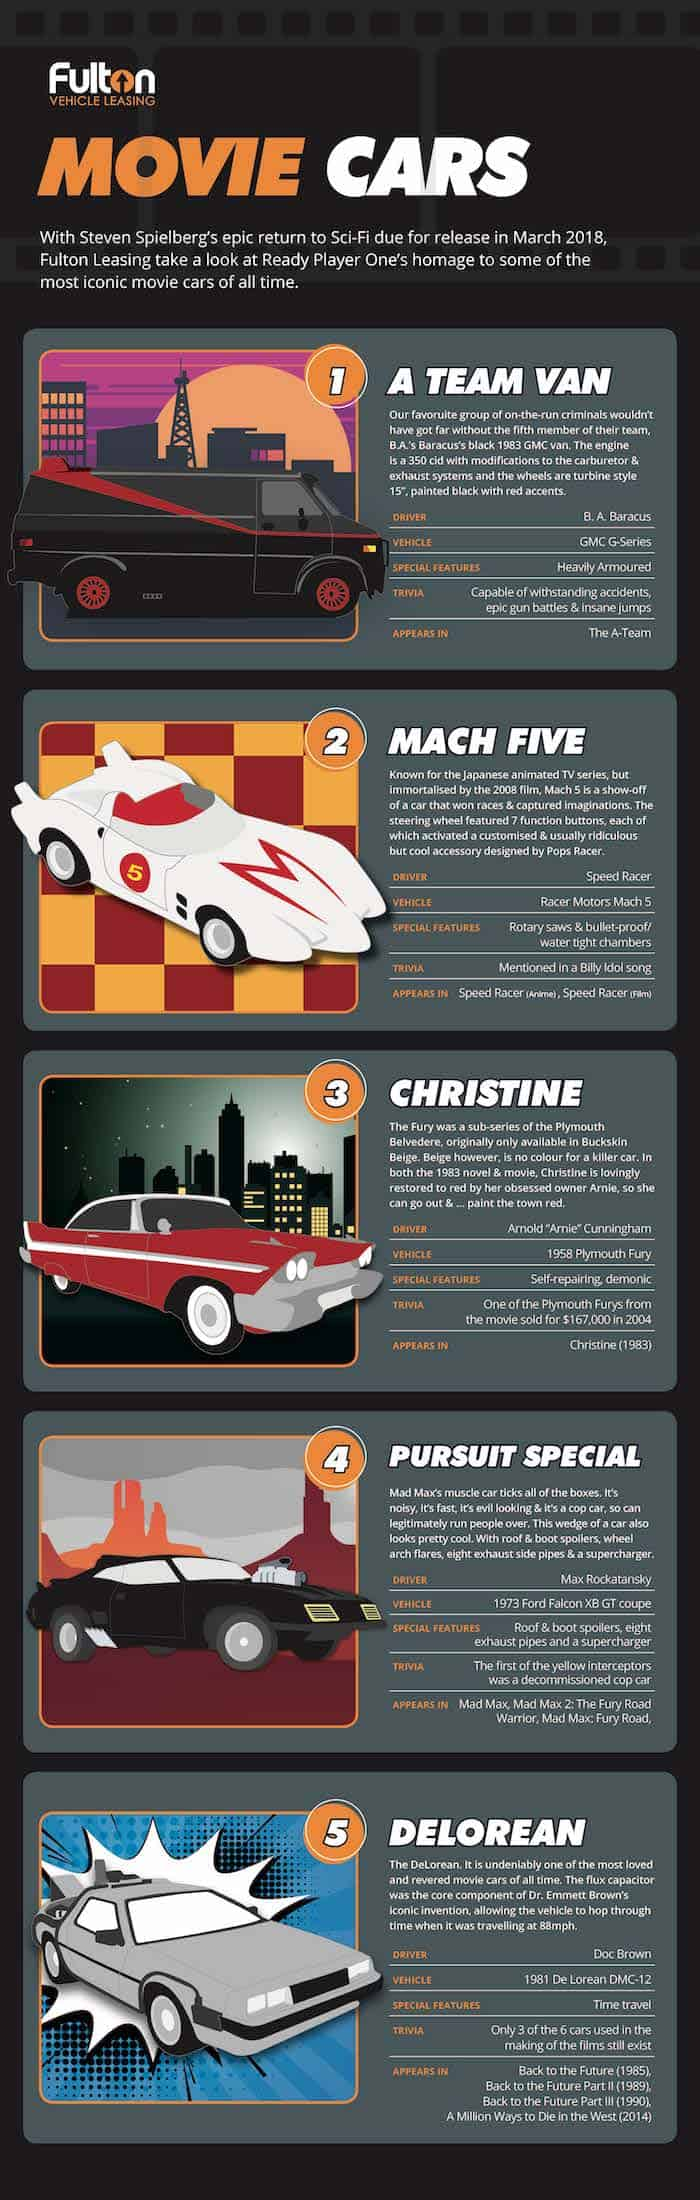 iconic movie cars